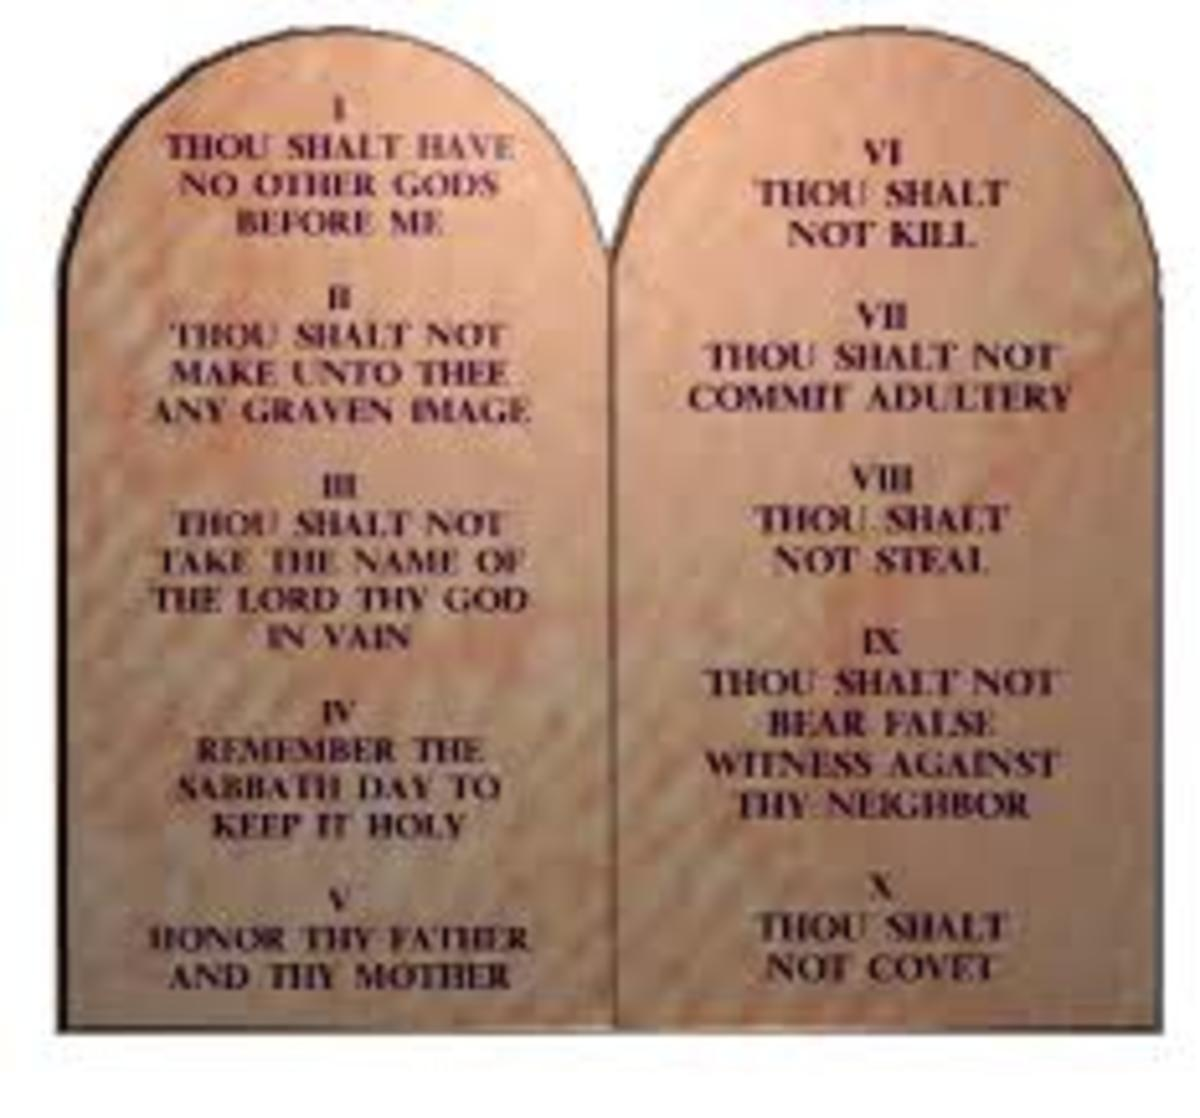 These are the tables of  The Ten Commandment of God according to the Bible, so any religion that derives from the Bible should follow them, but the Islamic people are twisting their meanings.